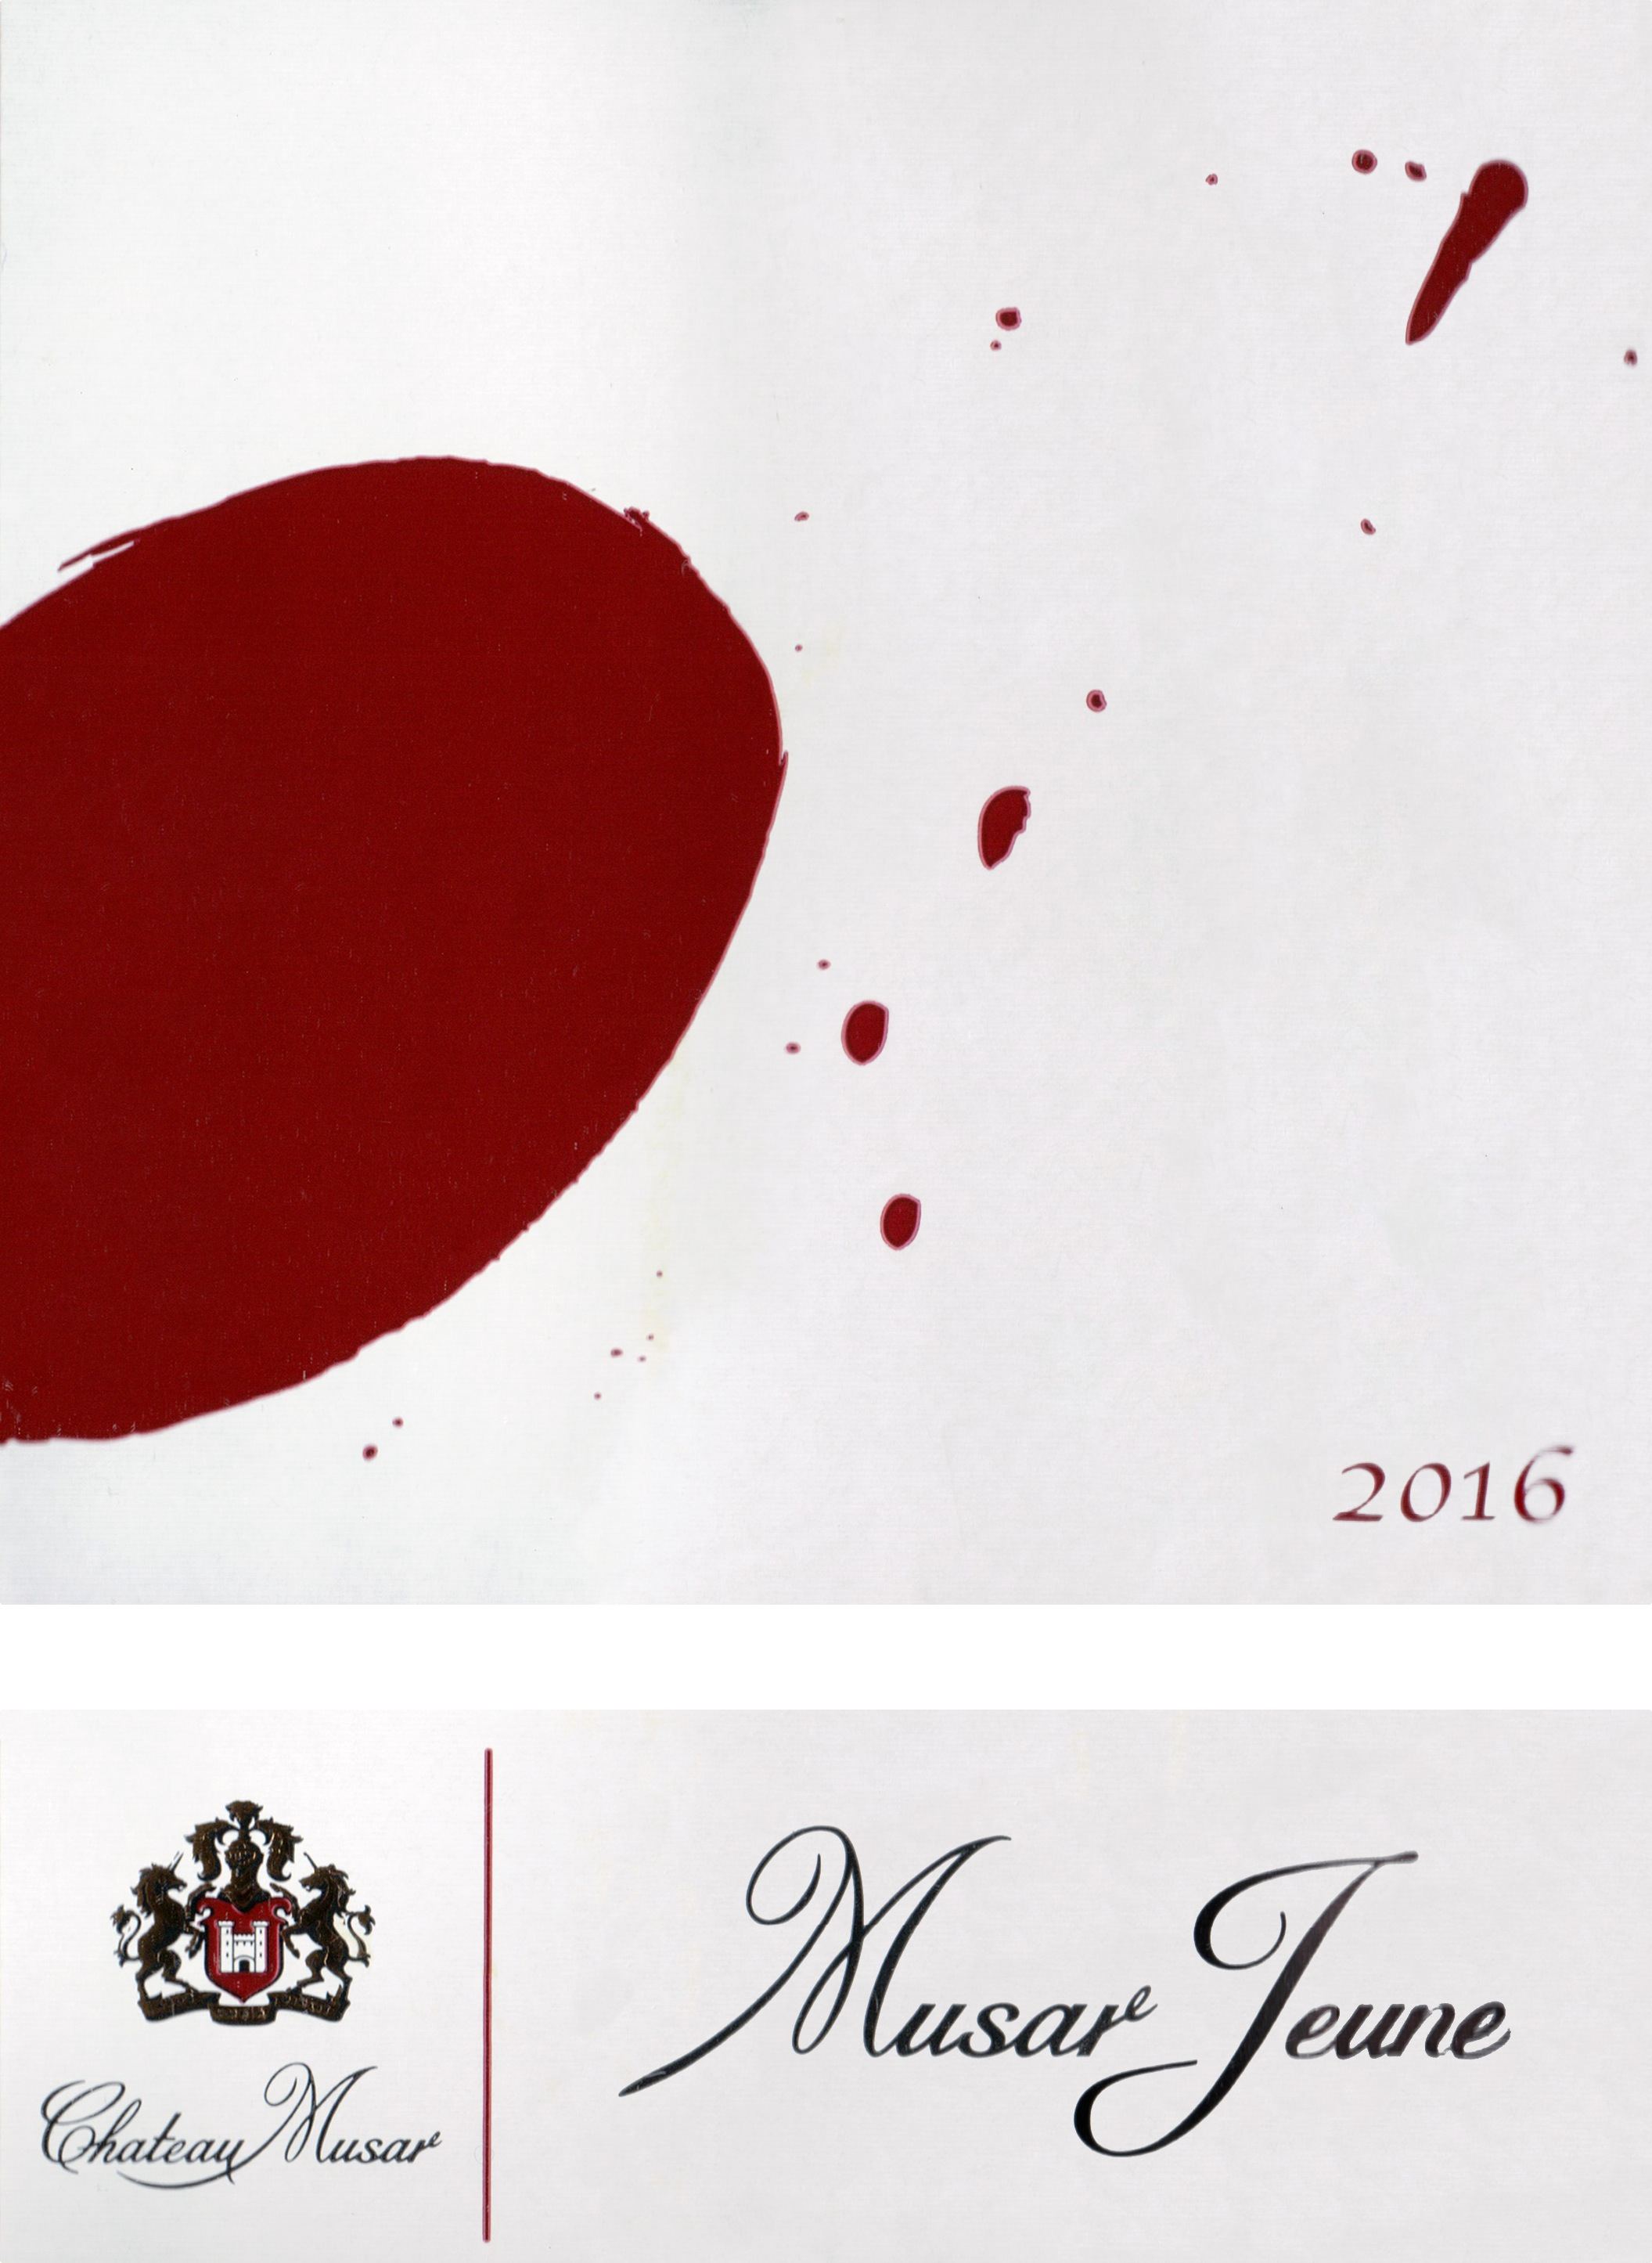 Chateau Musar Musar Jeune Red Blend